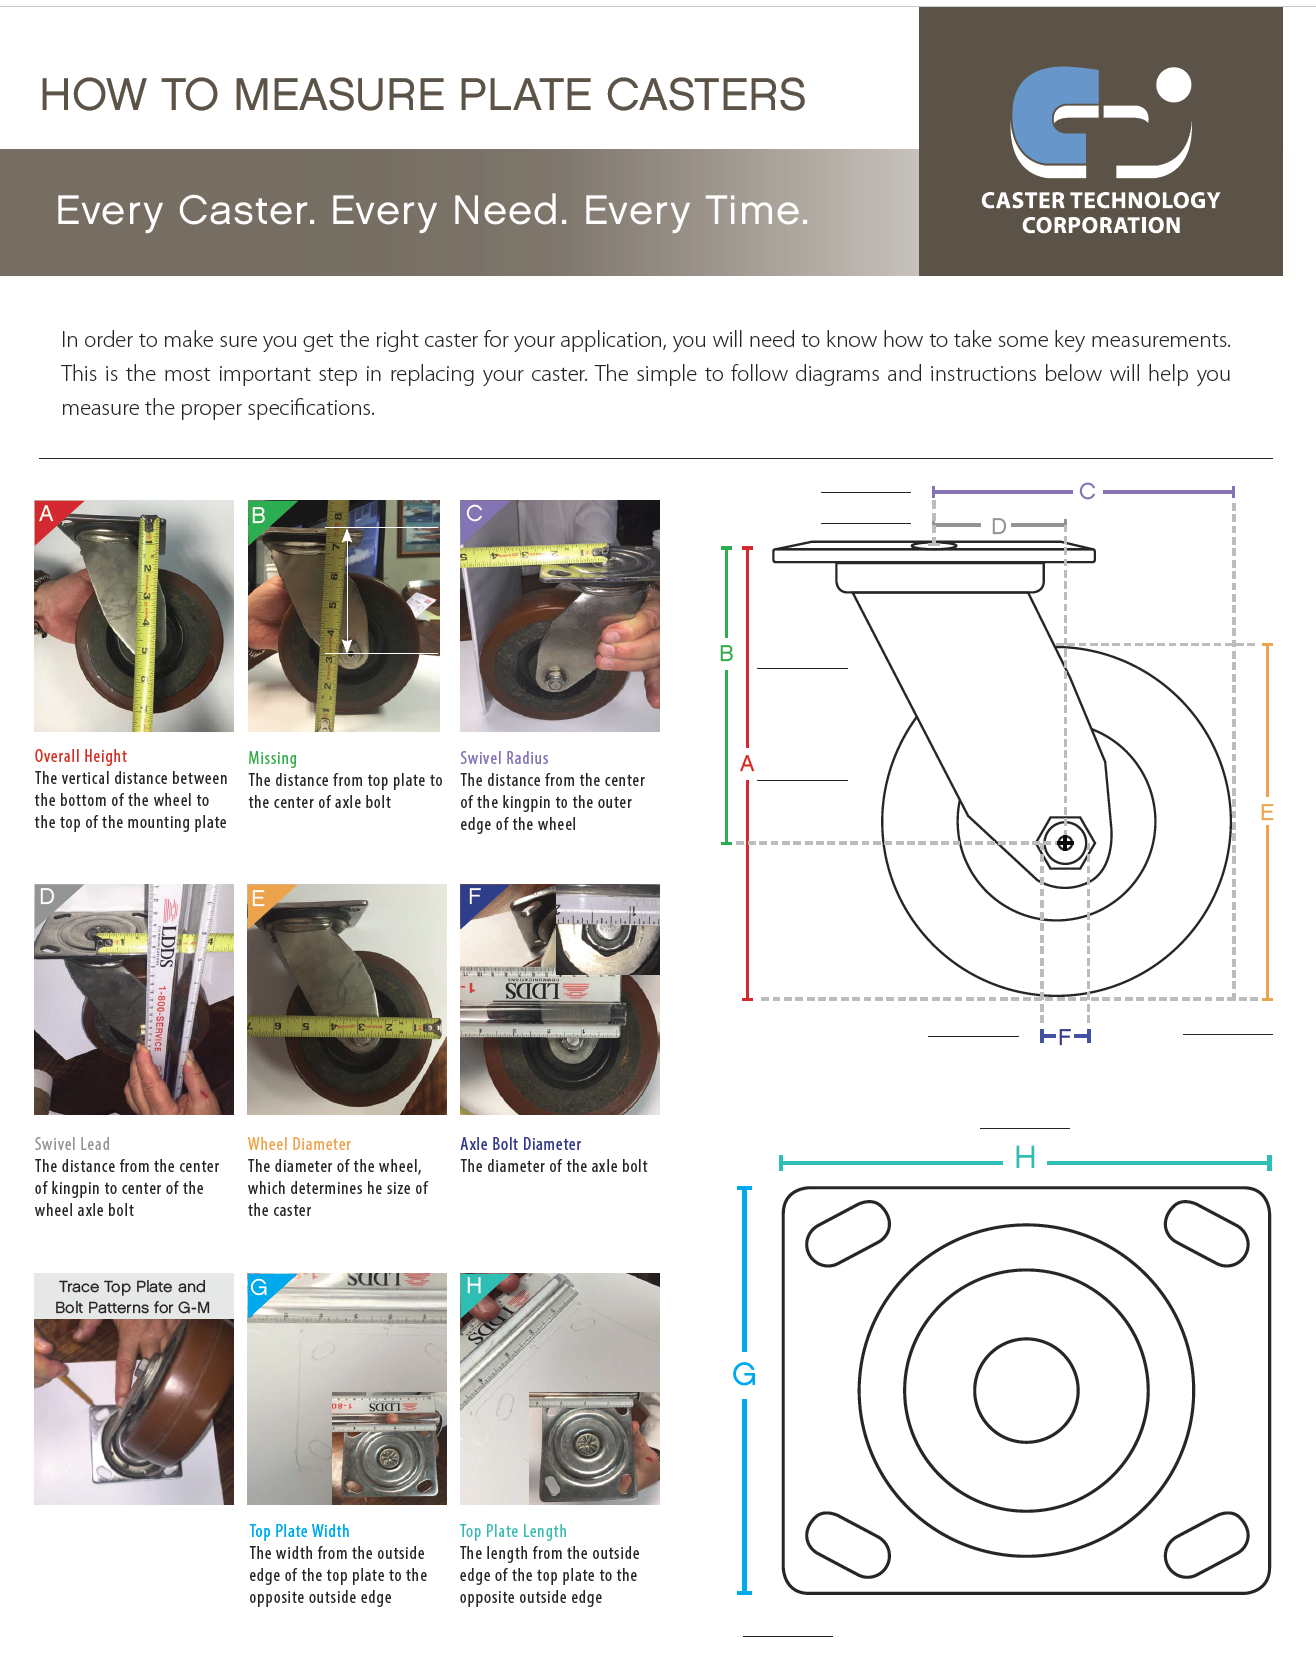 How to Measure Plate Casters